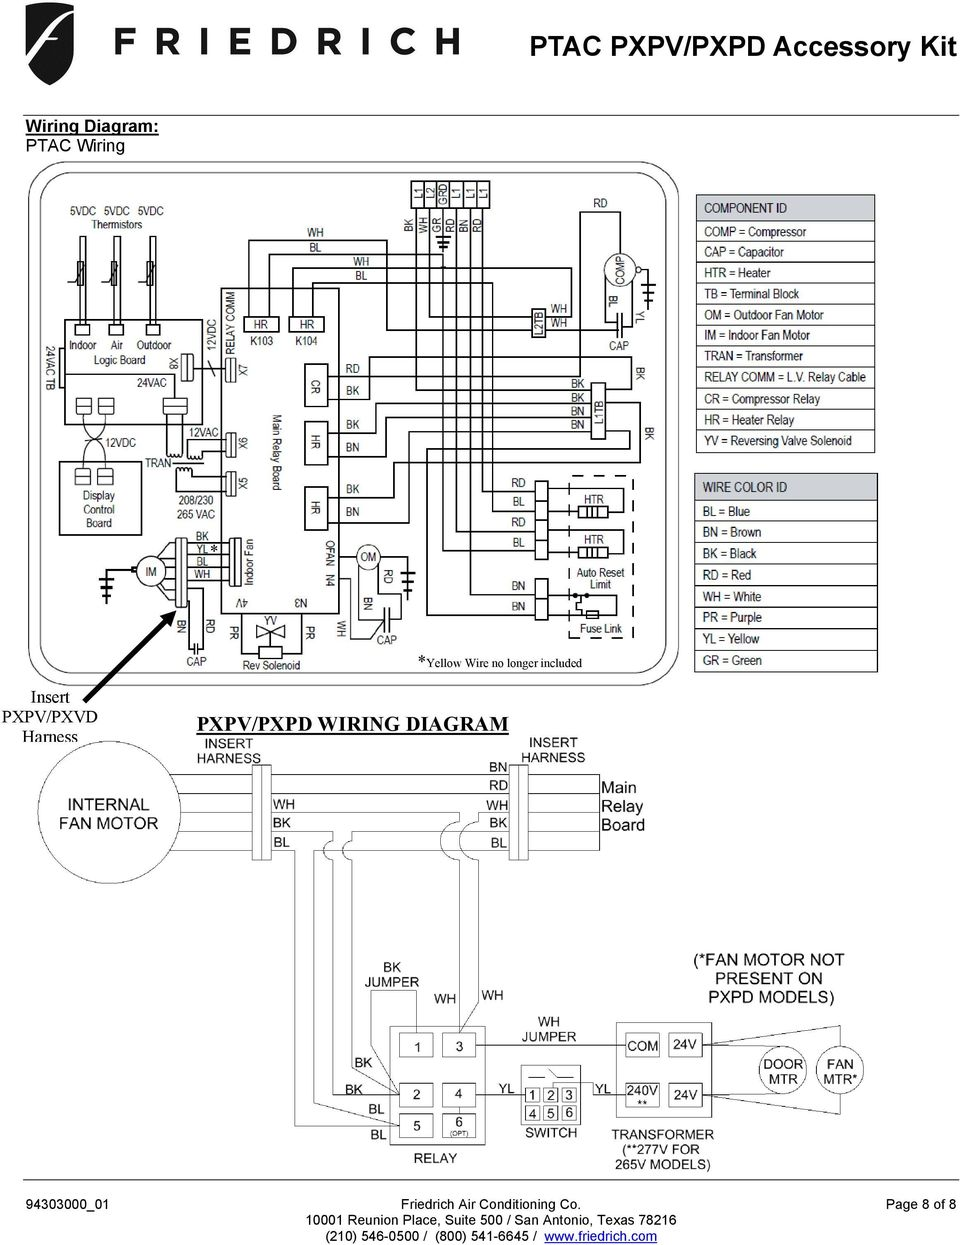 Harness PXPV/PXPD WIRING DIAGRAM